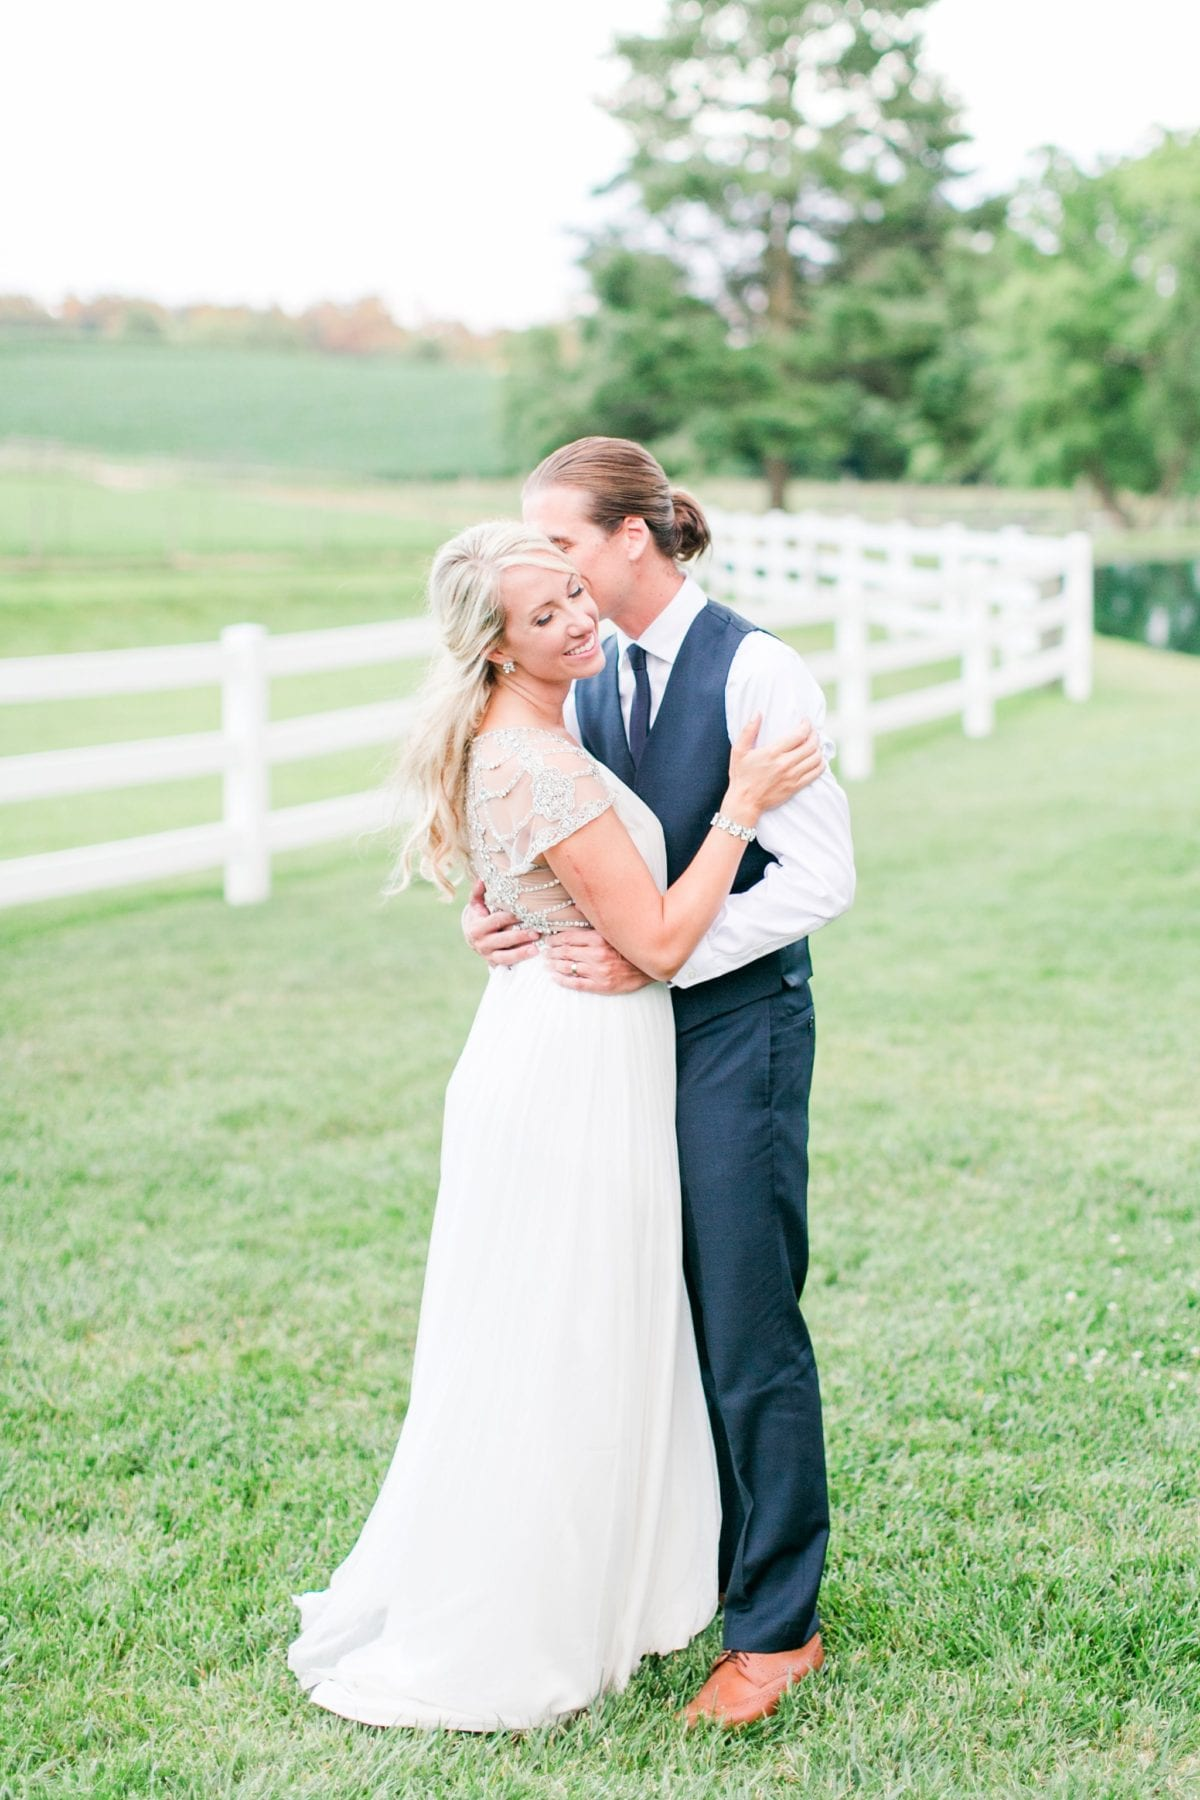 Pond View Farm Wedding Photos Maryland Wedding Photographer Kristen & Ryan Megan Kelsey Photography Blog-269.jpg